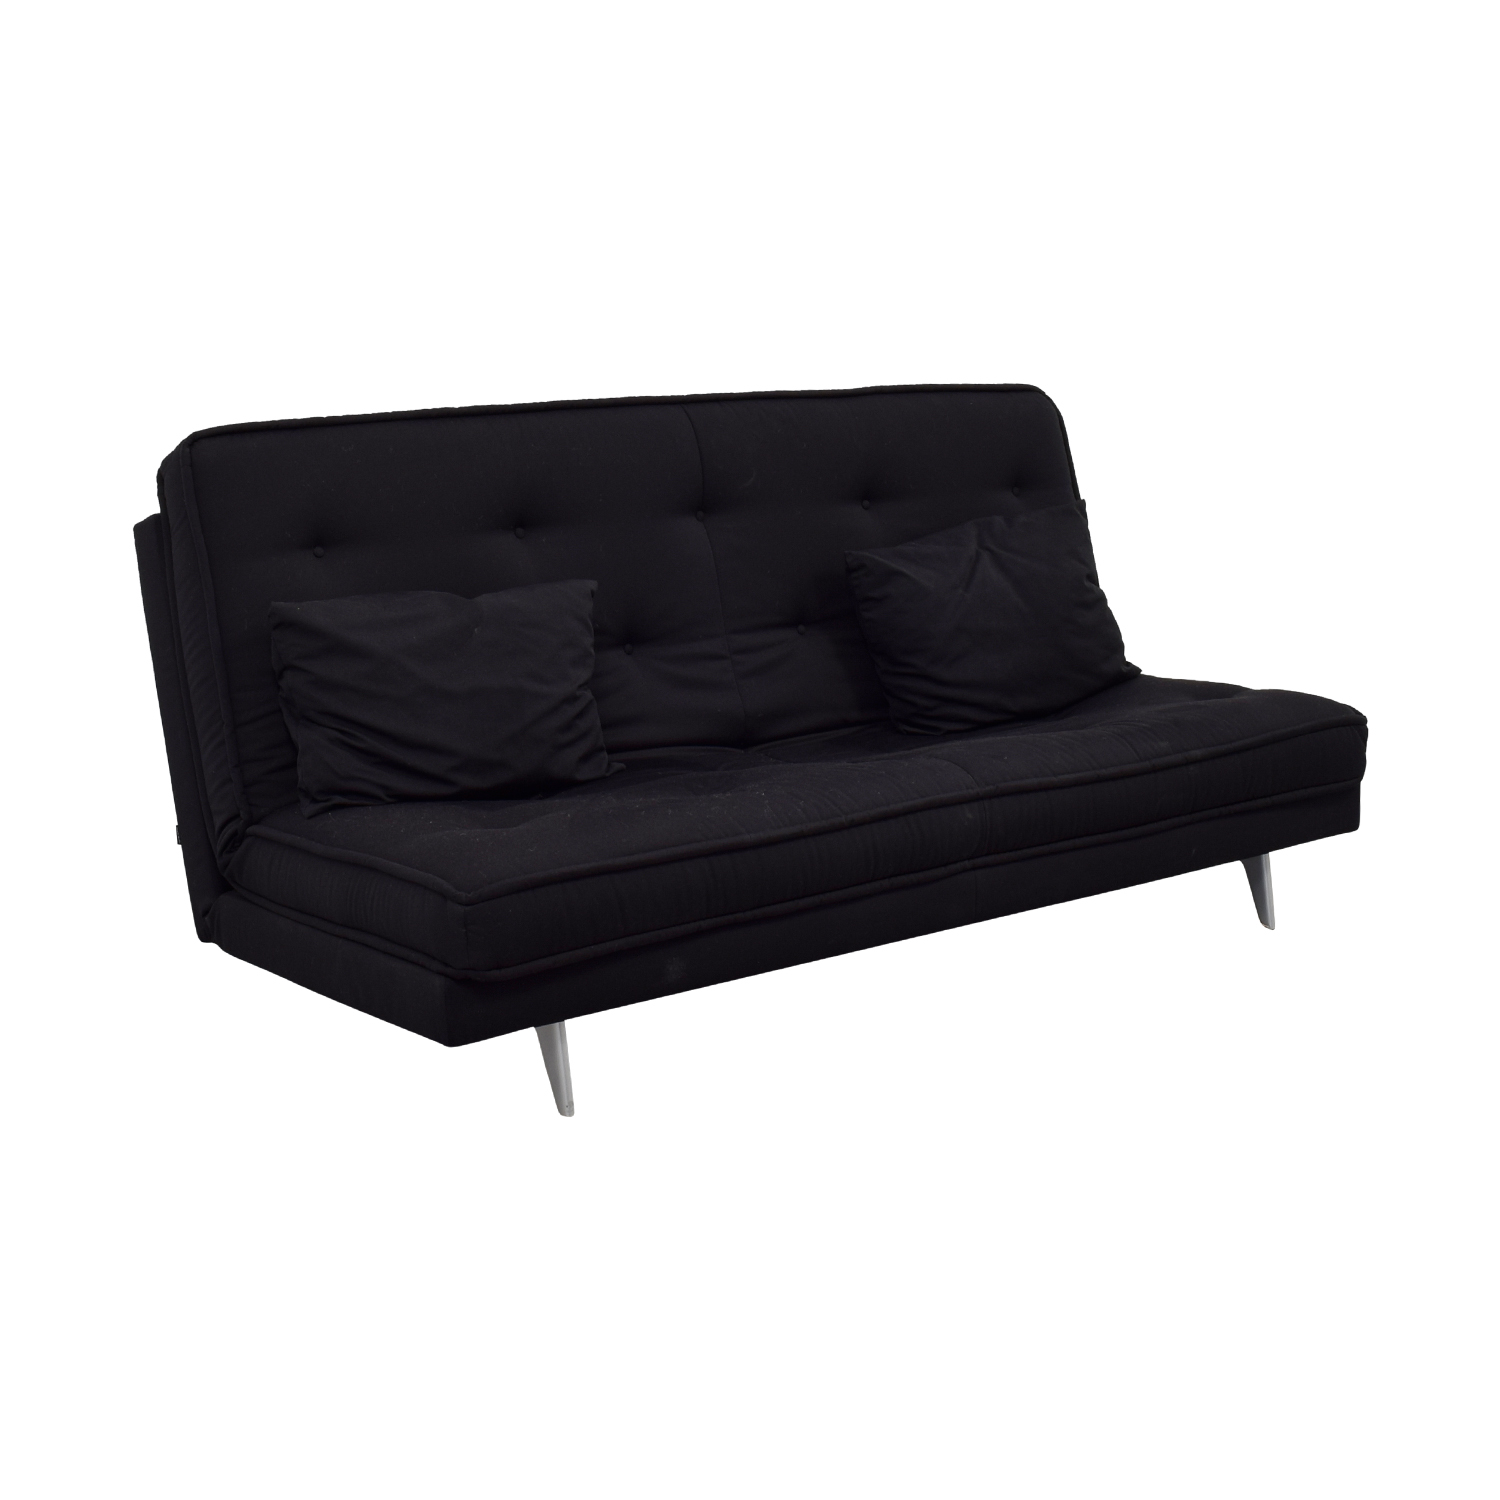 nomade express sofa bed ligne roset. Black Bedroom Furniture Sets. Home Design Ideas